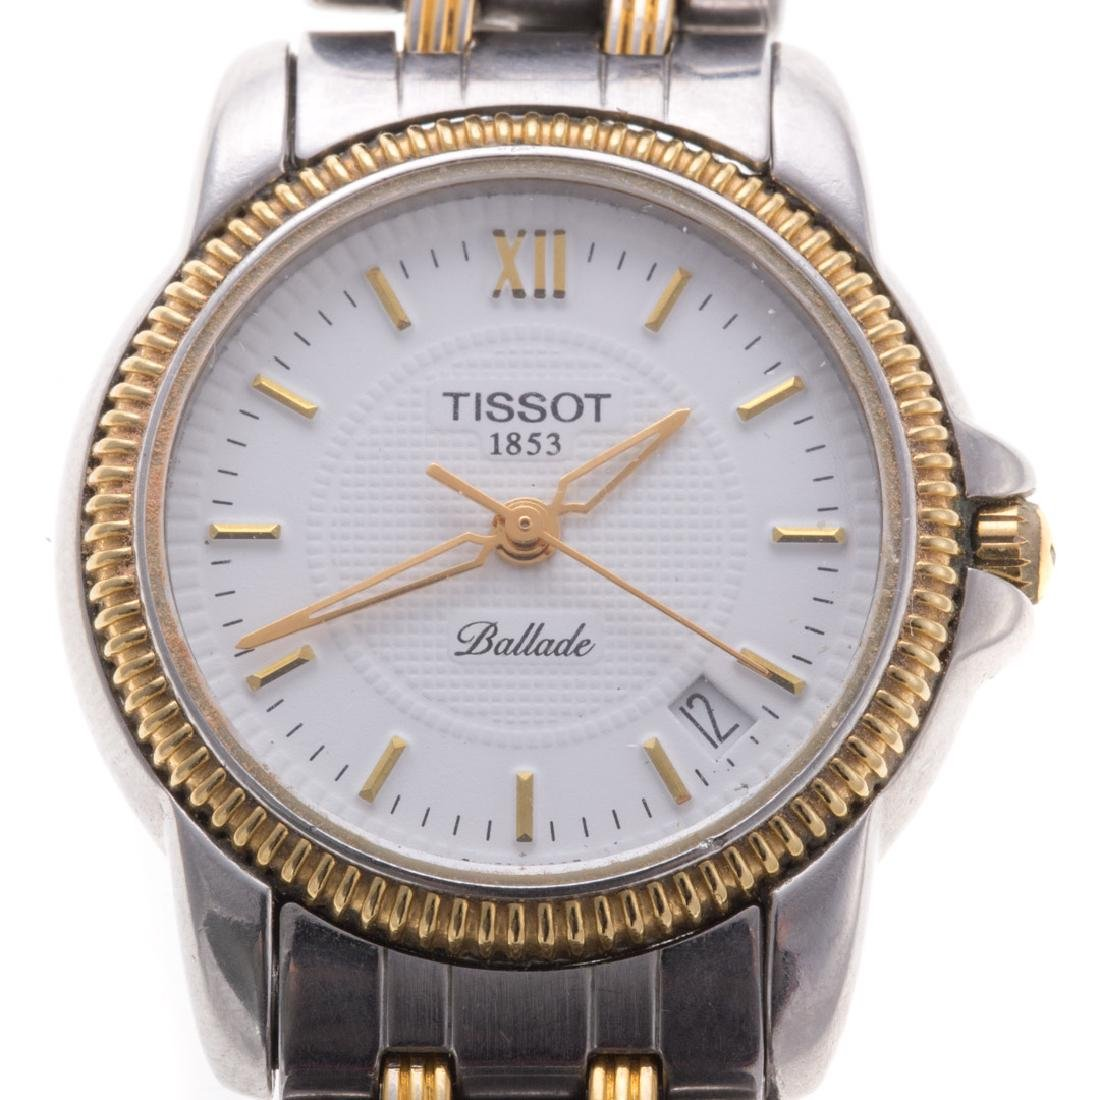 A Lady's 14K Merano & Two Tone Tissot Watches - 6